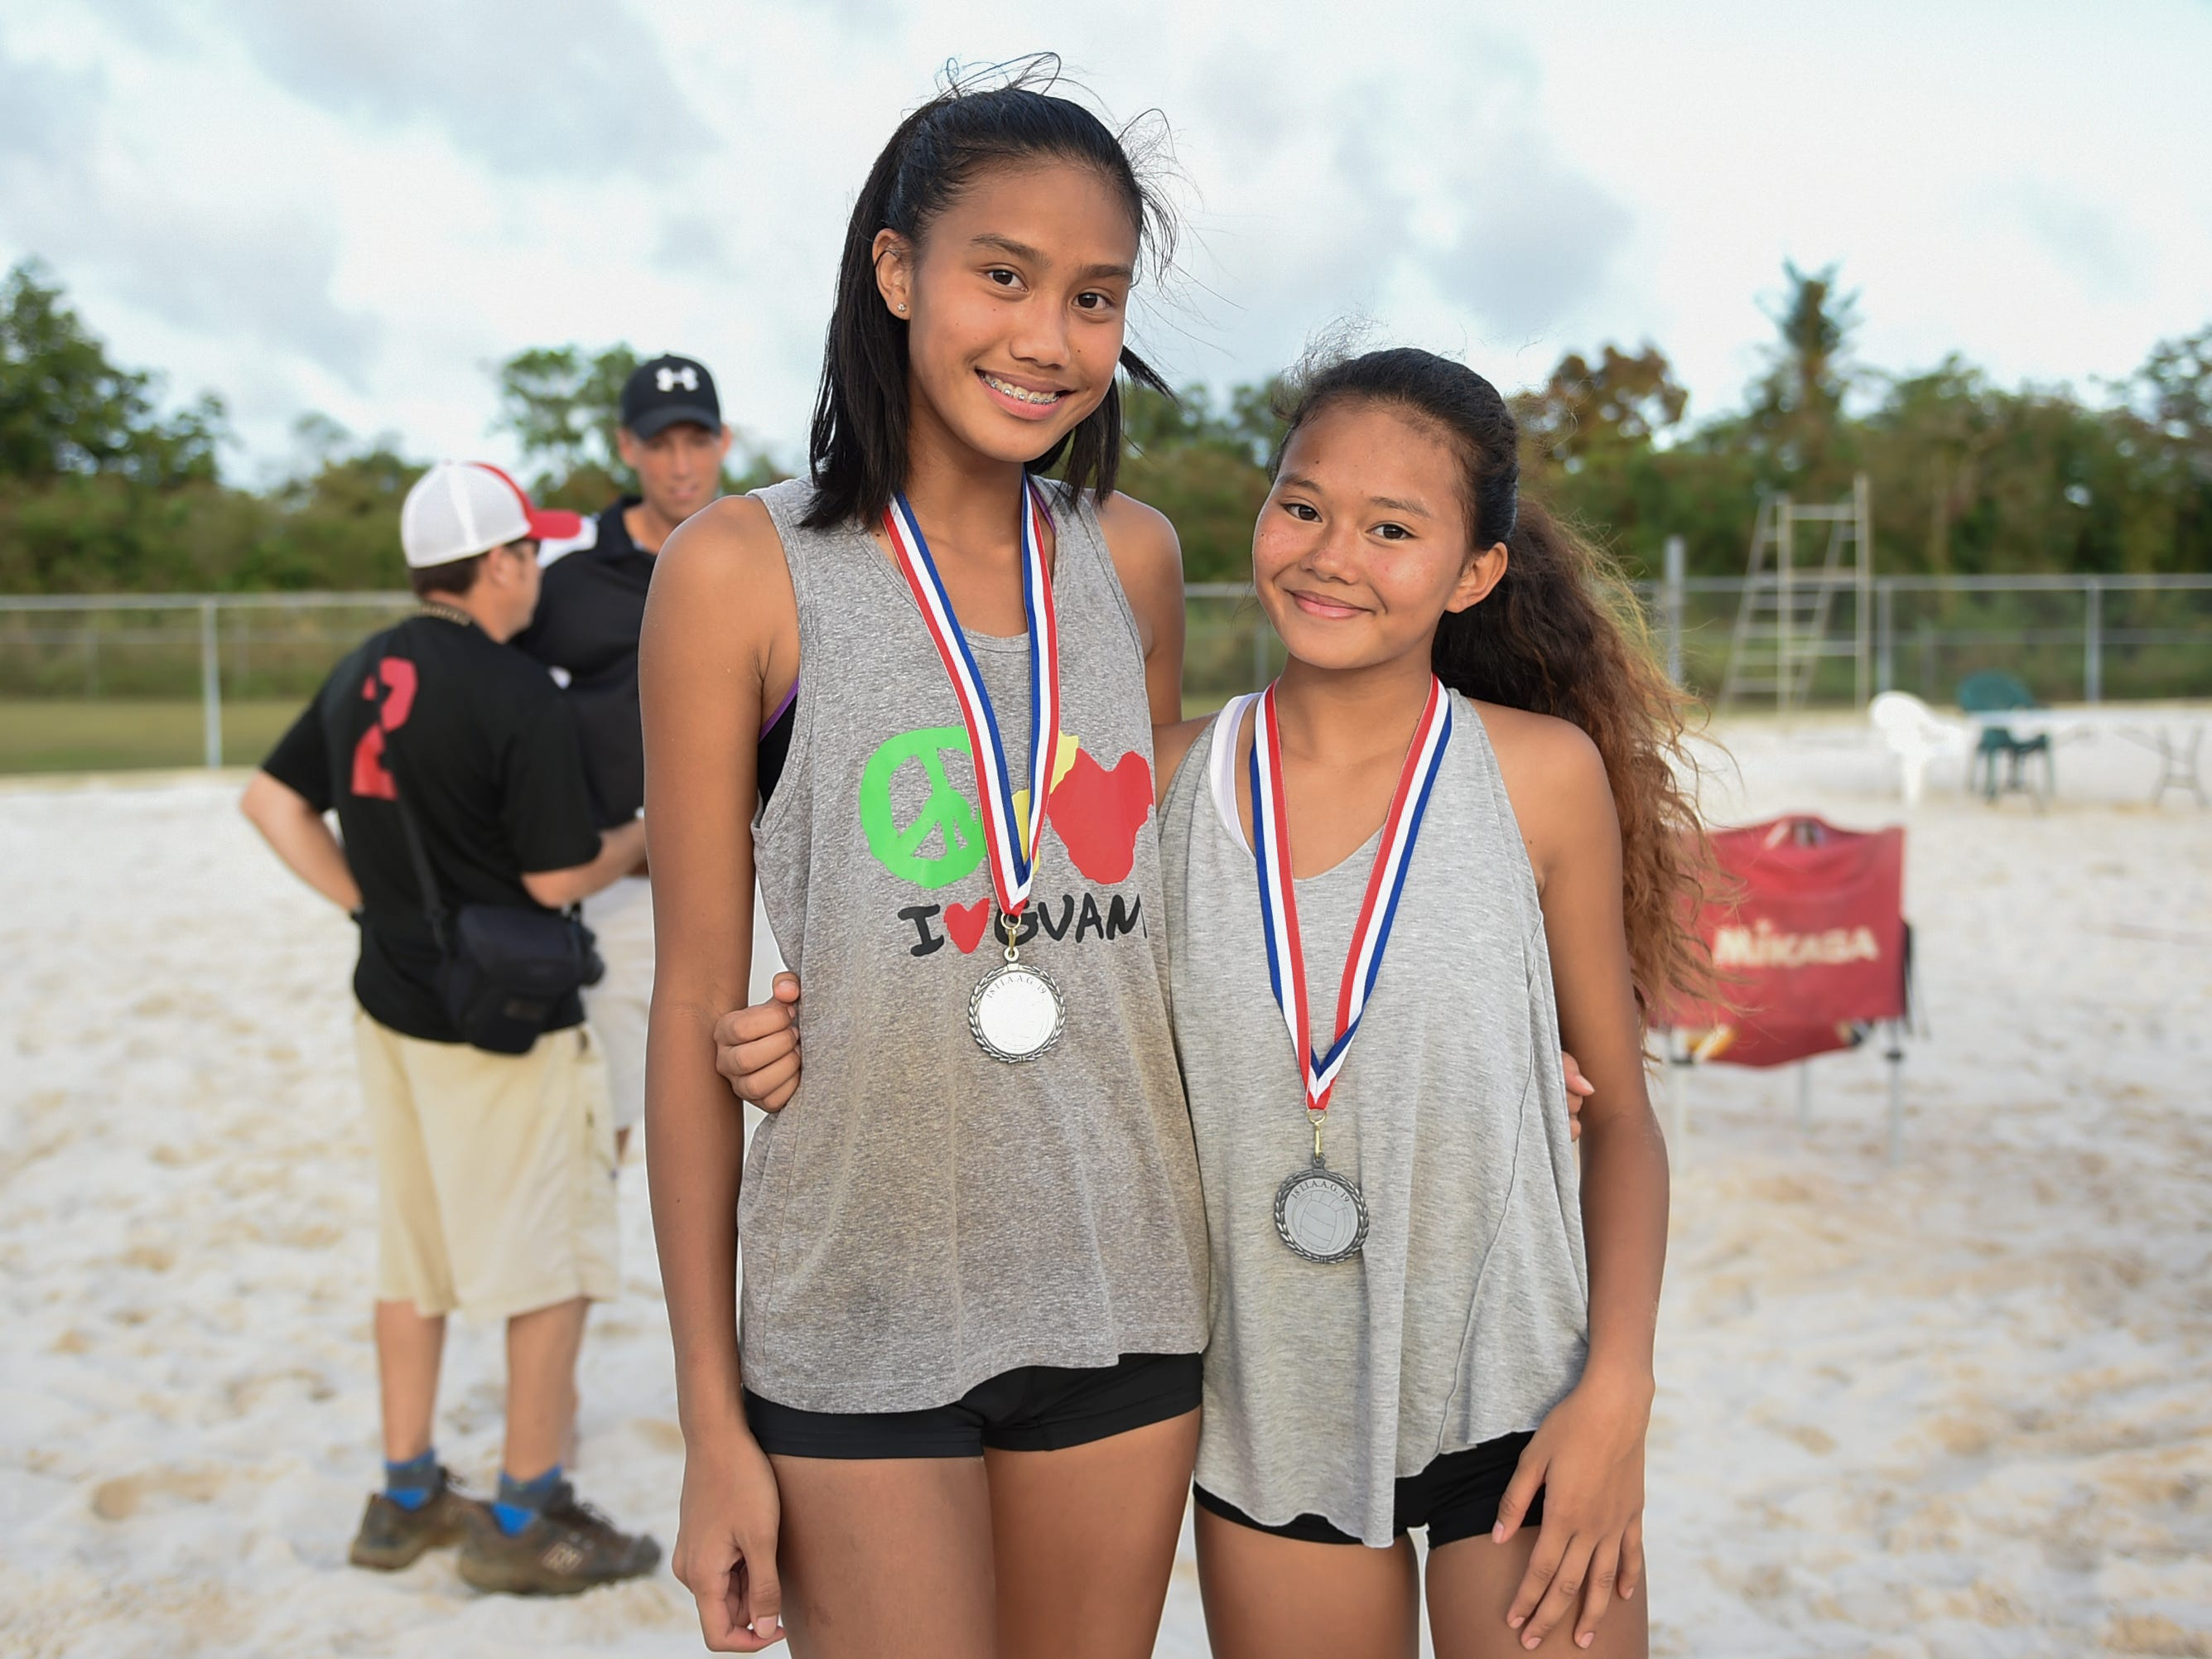 St. John's teammates Kristen Serrano, left, and Yasmeen Lopez after their IIAAG Beach Volleyball championship game at the Guam Football Association National Training Center in Dededo, March 12, 2019.